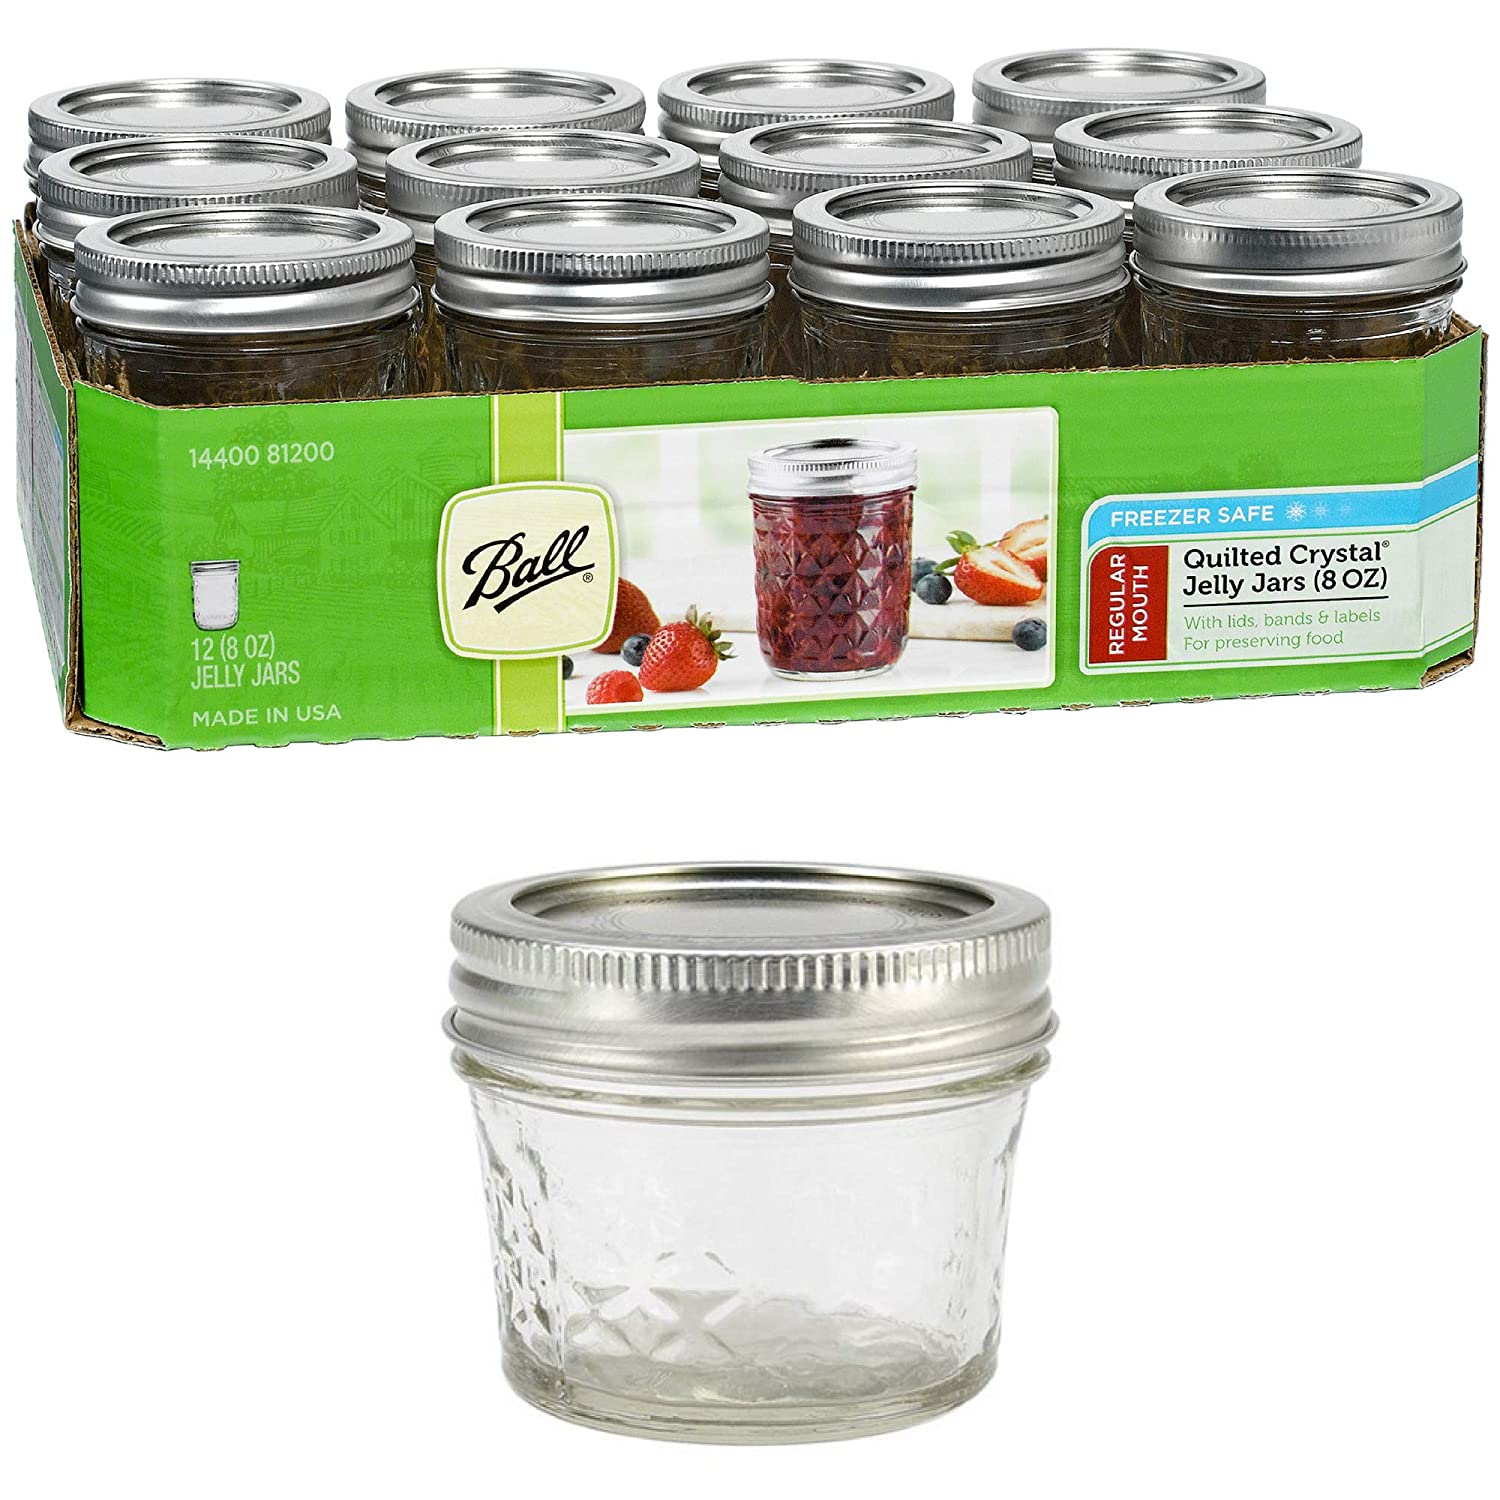 Ball Collection Elite Wide Mouth Half-Pint 8 Oz. Glass Mason Jars with Lids and Bands, 4 Count (Blue + Jelly Jar)